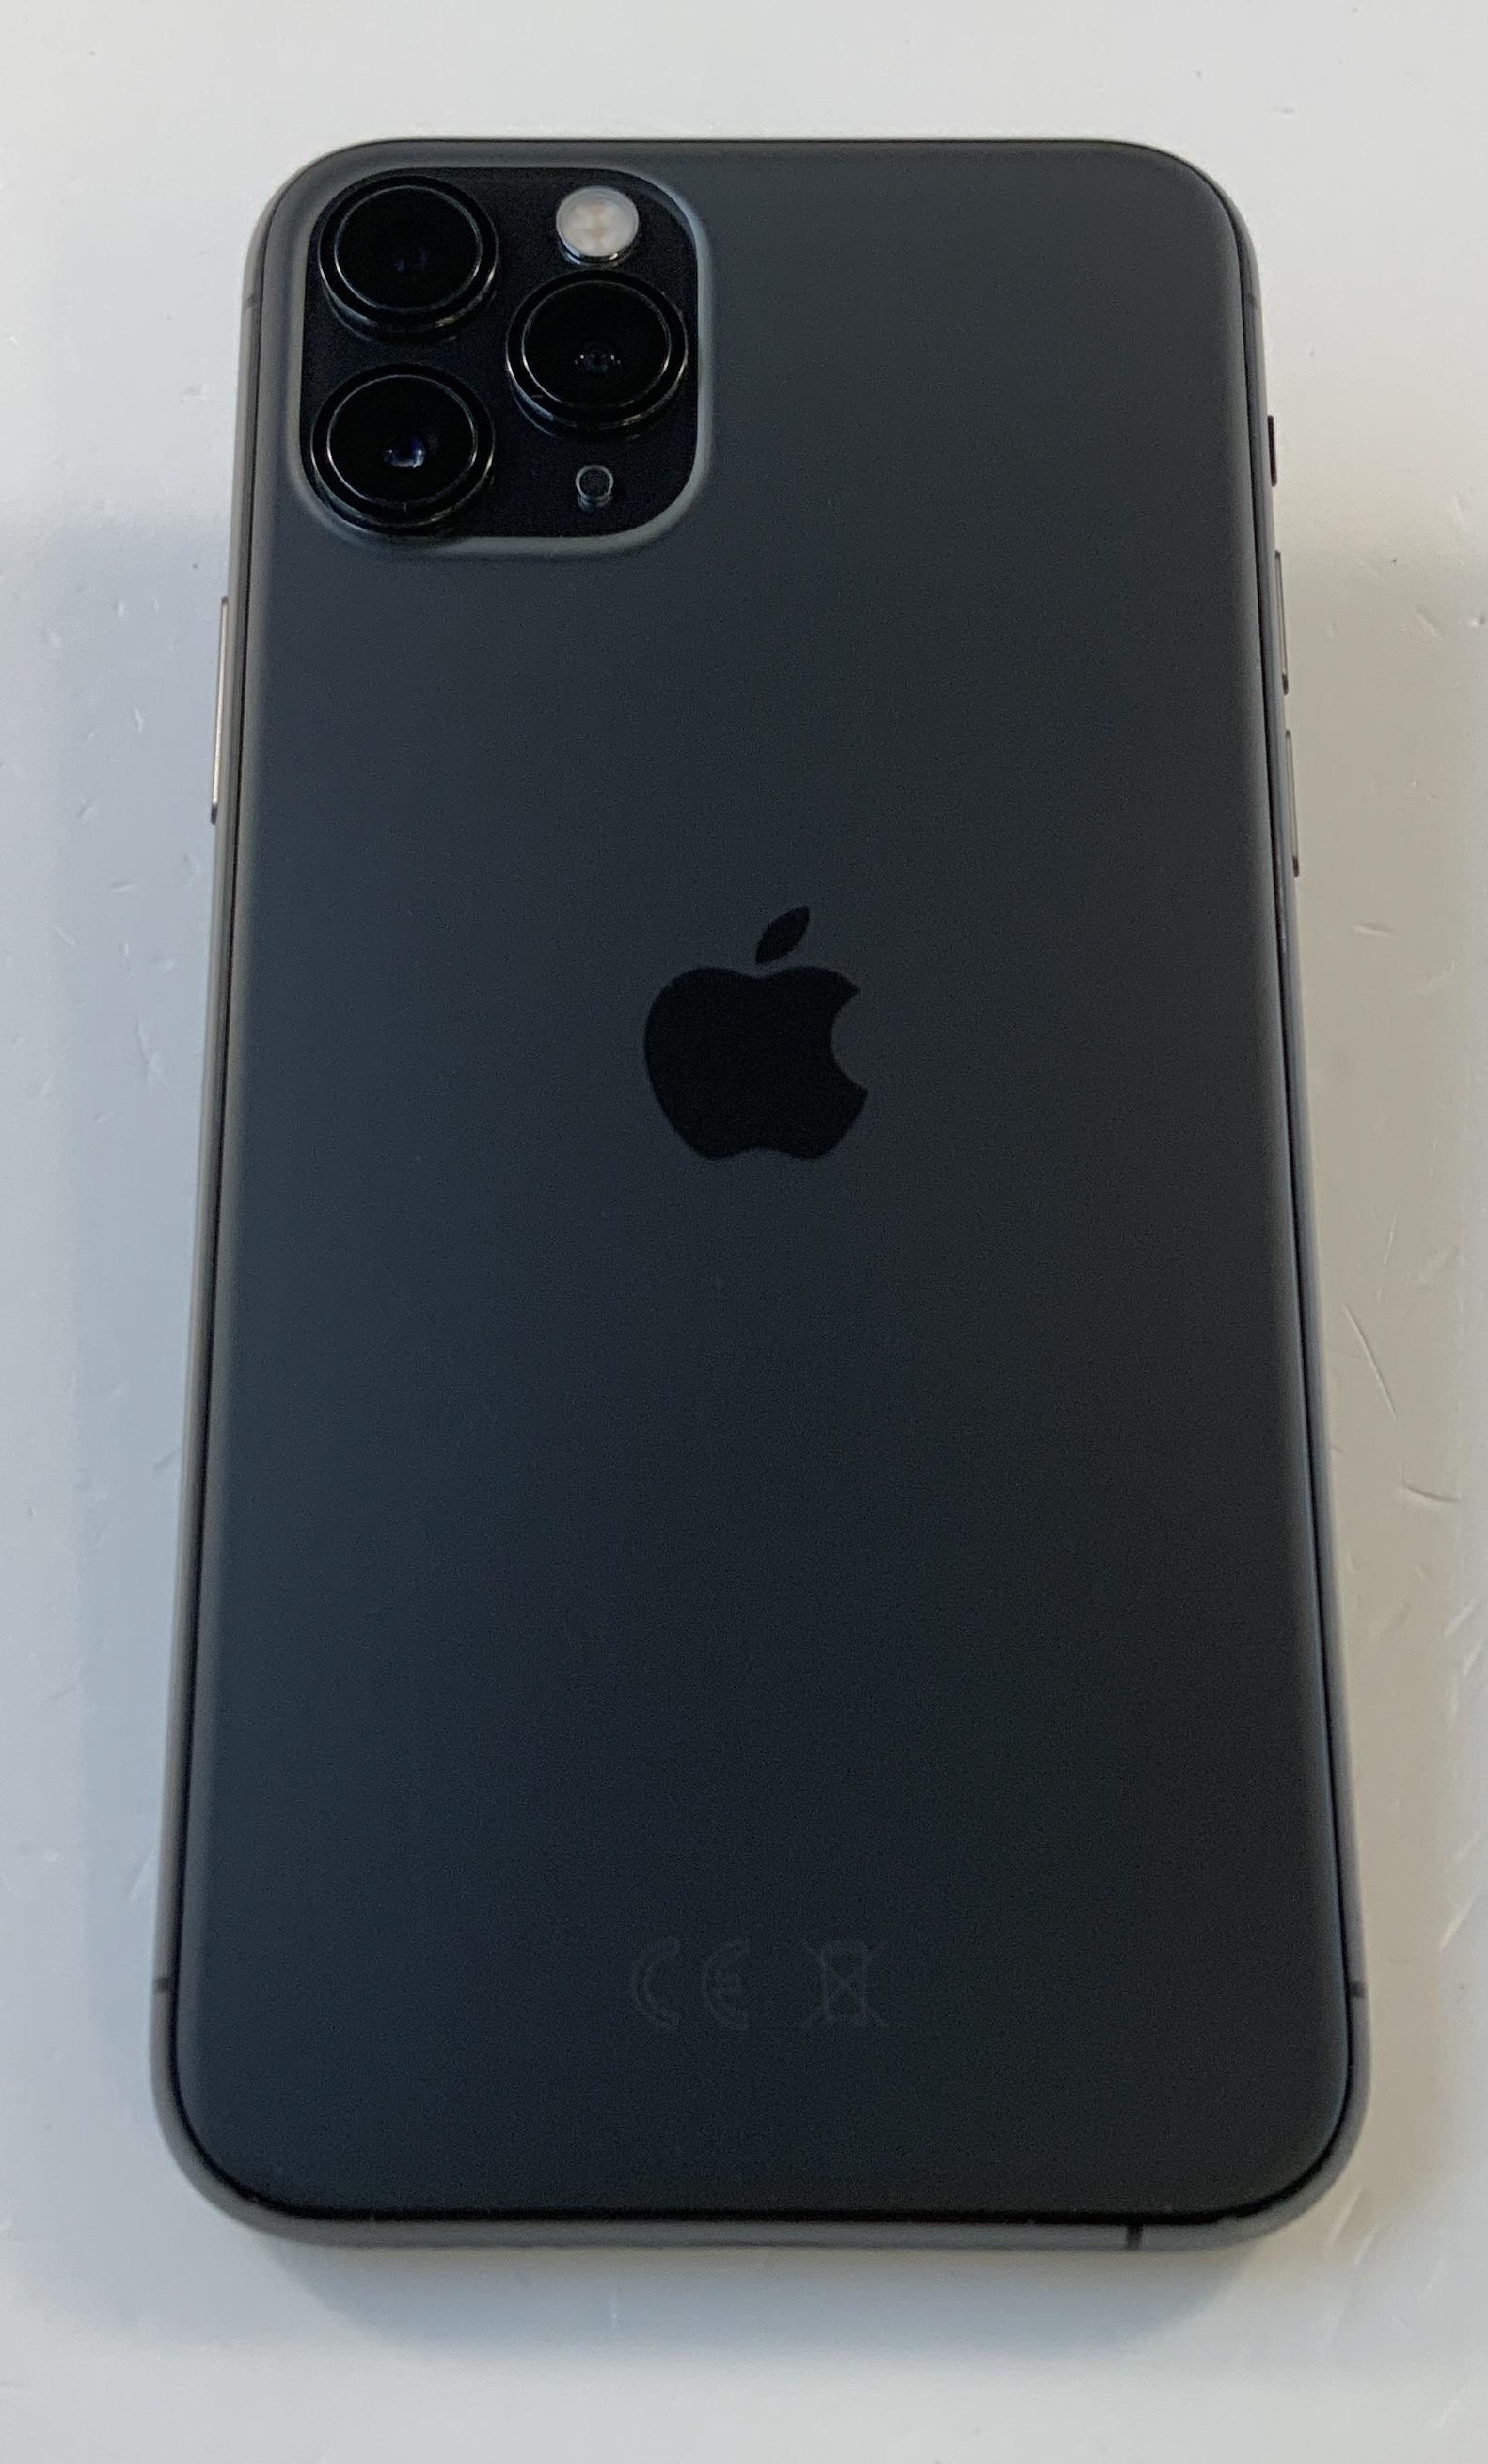 iPhone 11 Pro 64GB, 64GB, Space Gray, image 2